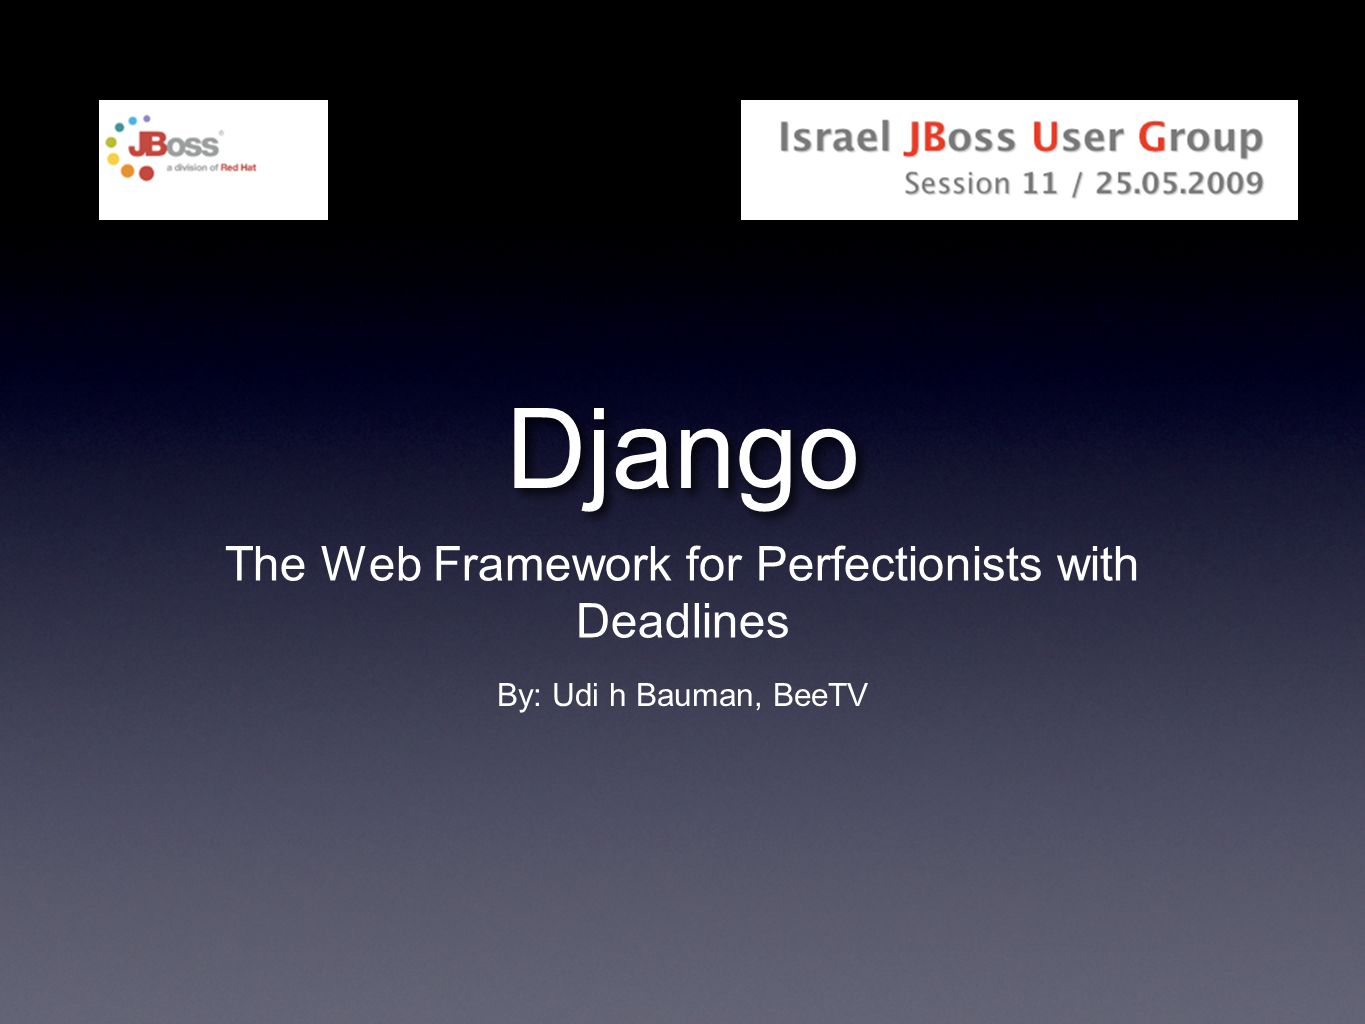 Django The Web Framework for Perfectionists with Deadlines By: Udi h Bauman, BeeTV